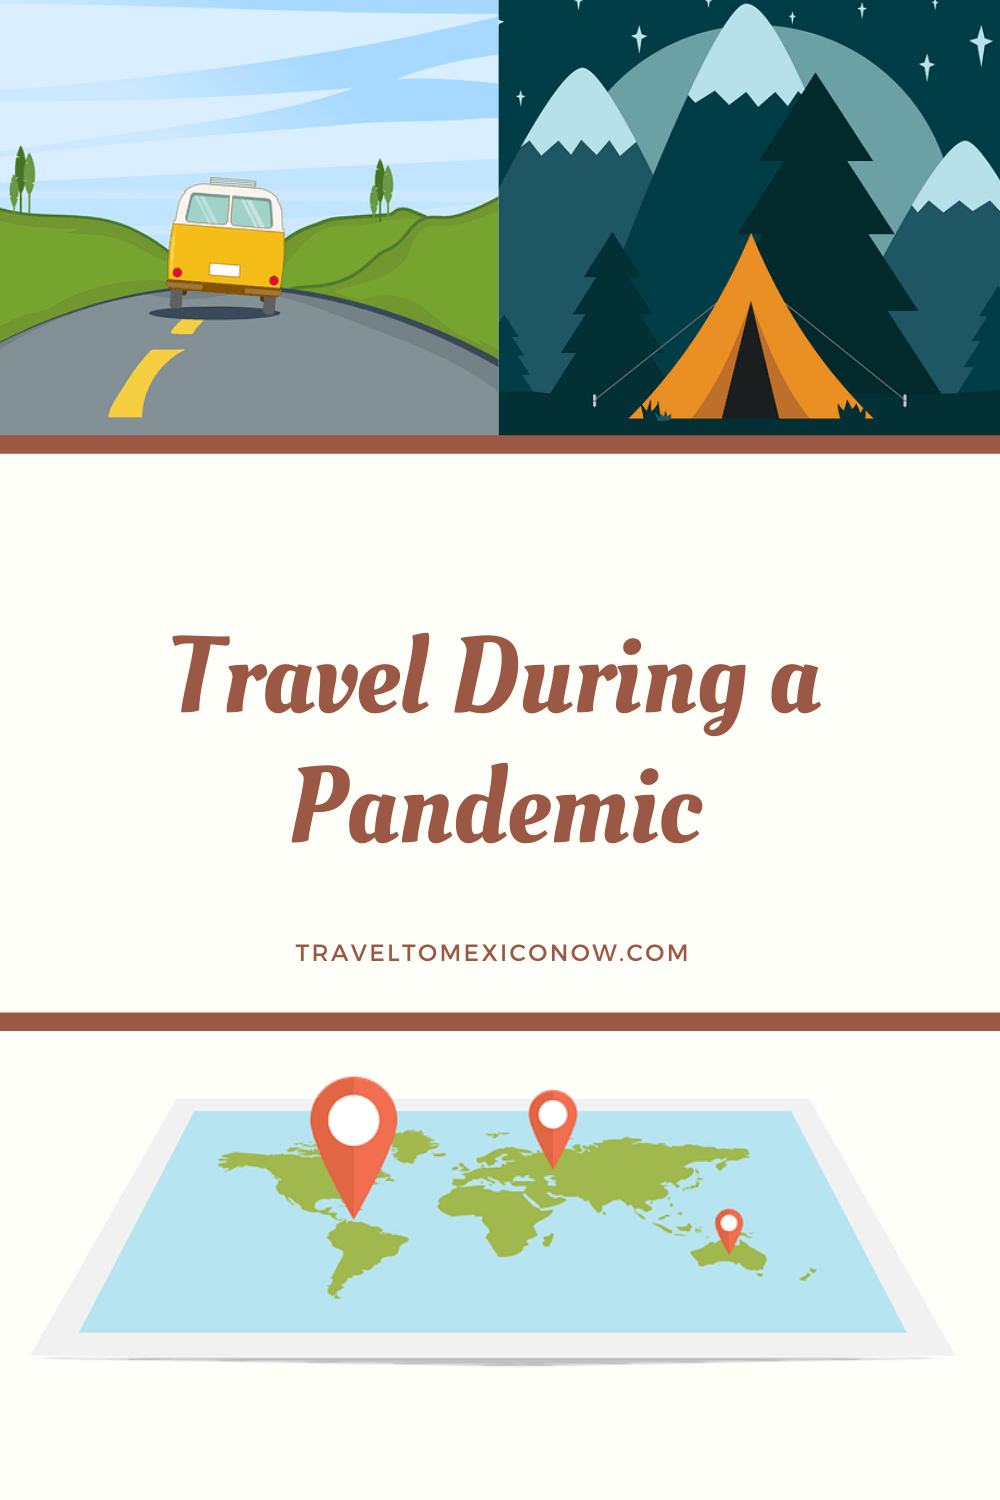 Travel During a Pandemic.